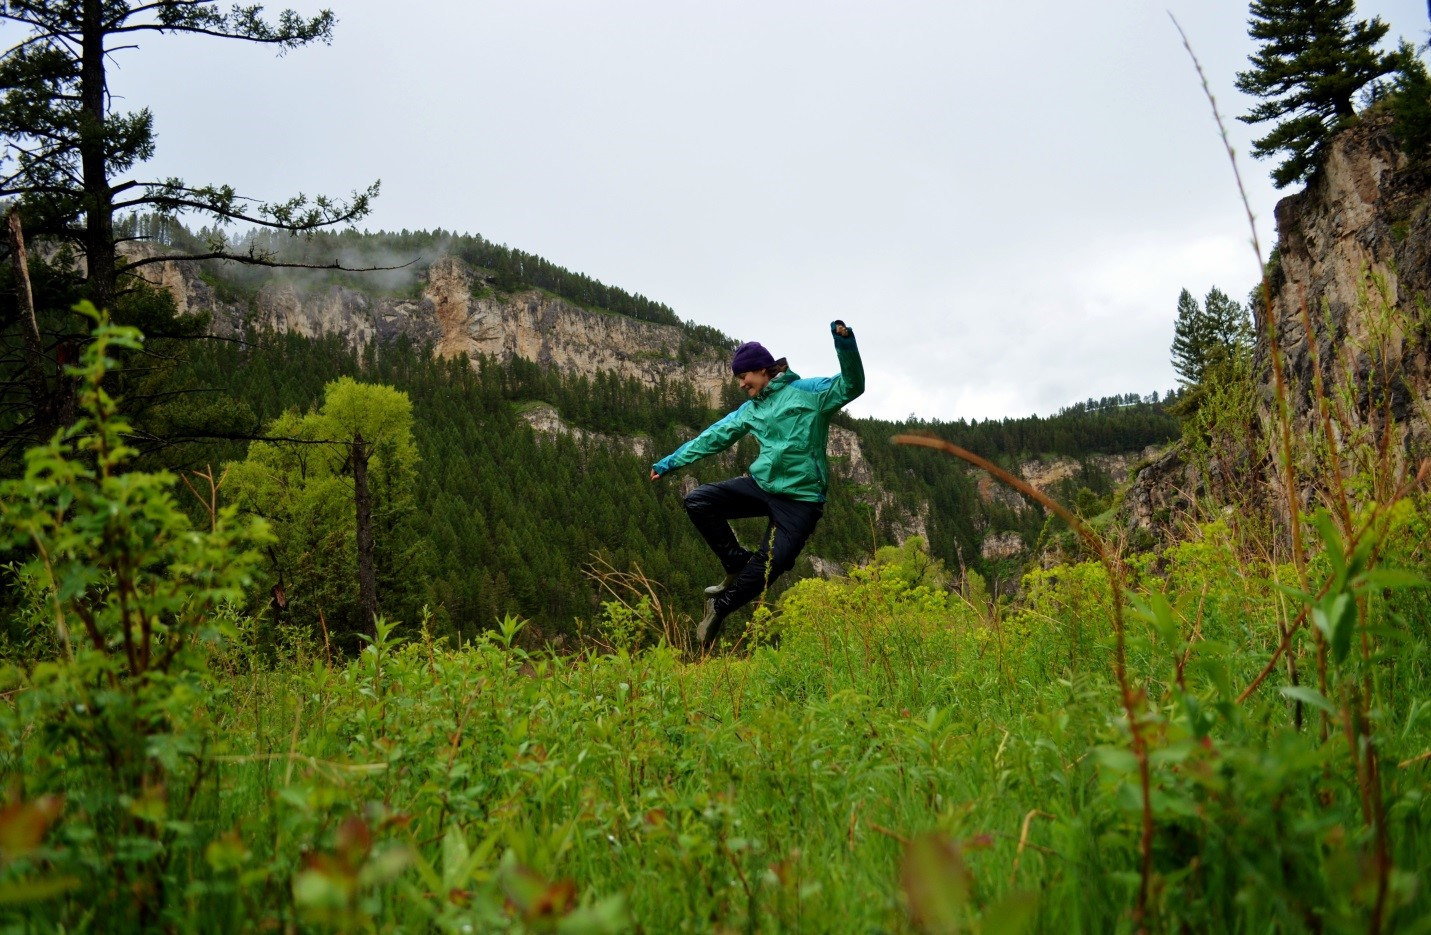 Montana fly fishing report by scott anderson for Montana fish company